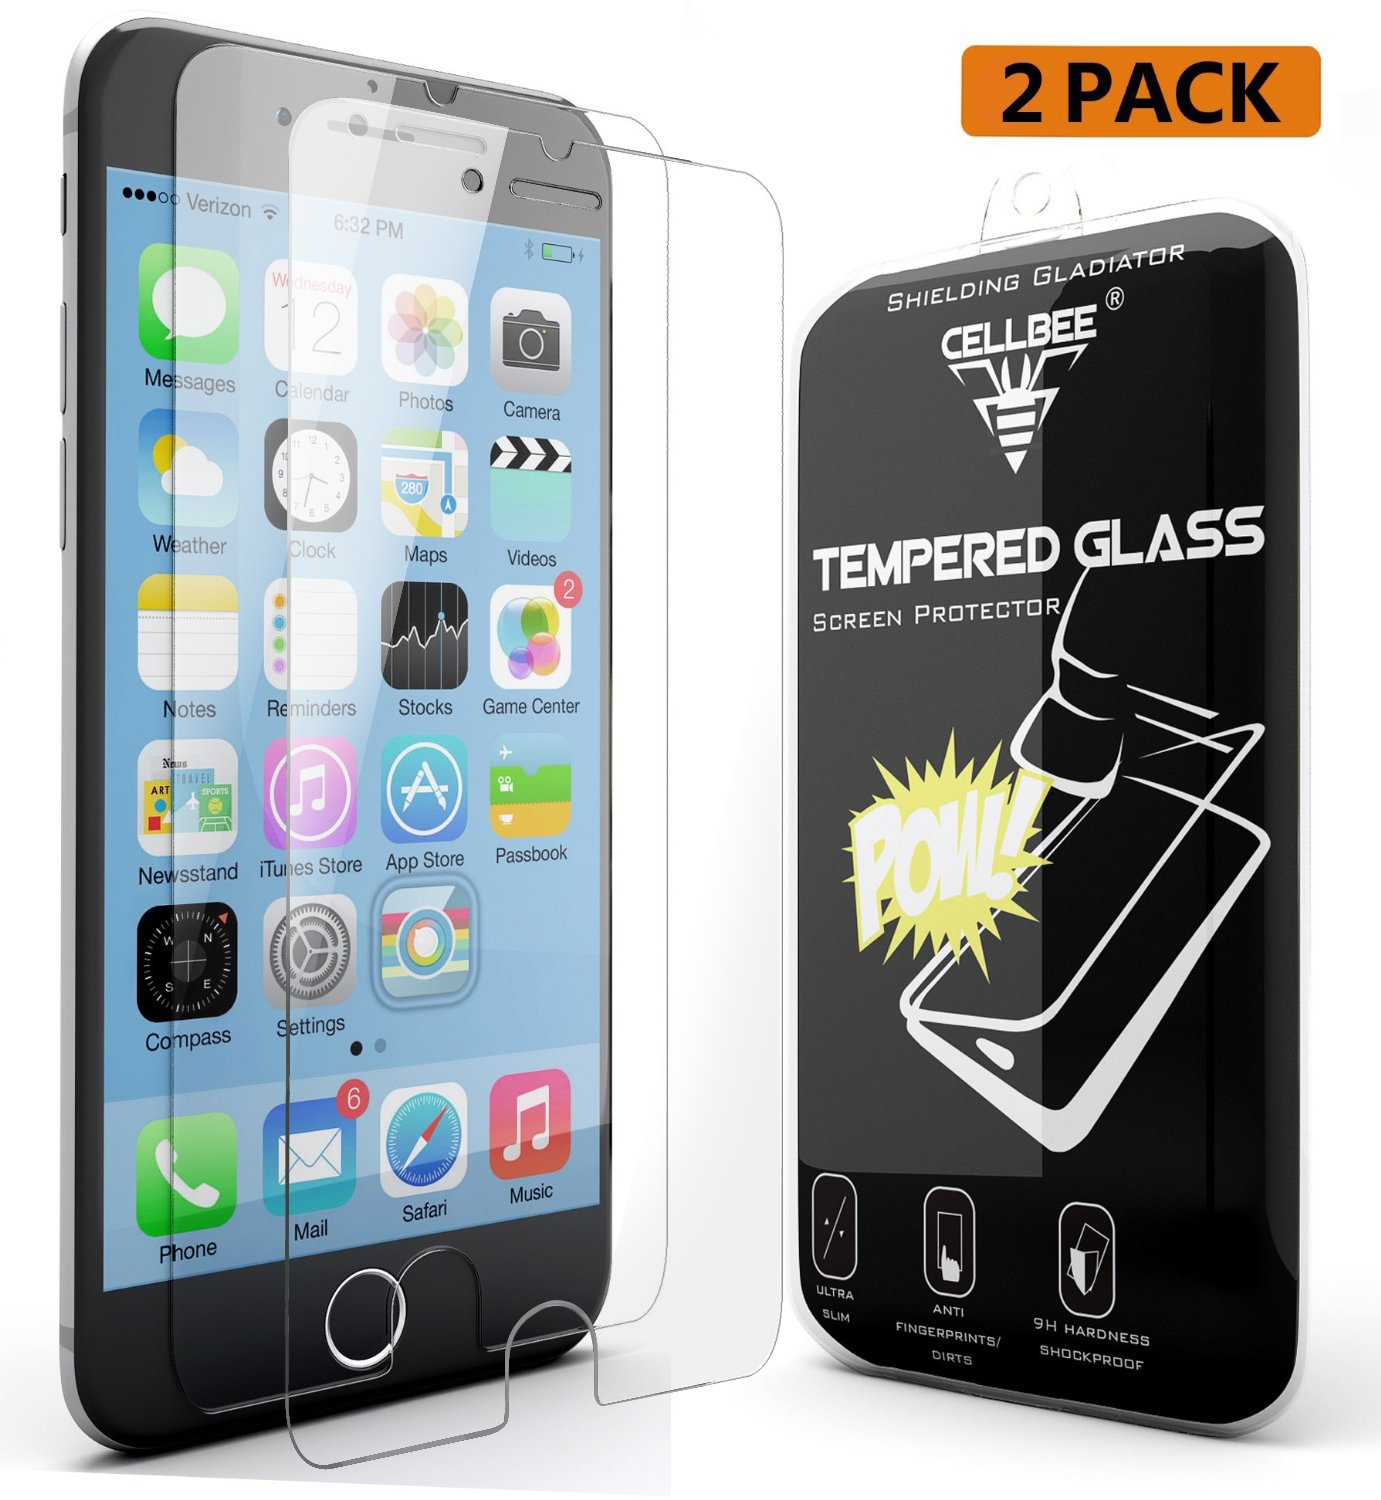 Iphone 6S Screen Protector Cellbee 2 Pack [Shielding Gladiator] Tempered Glas.. 14